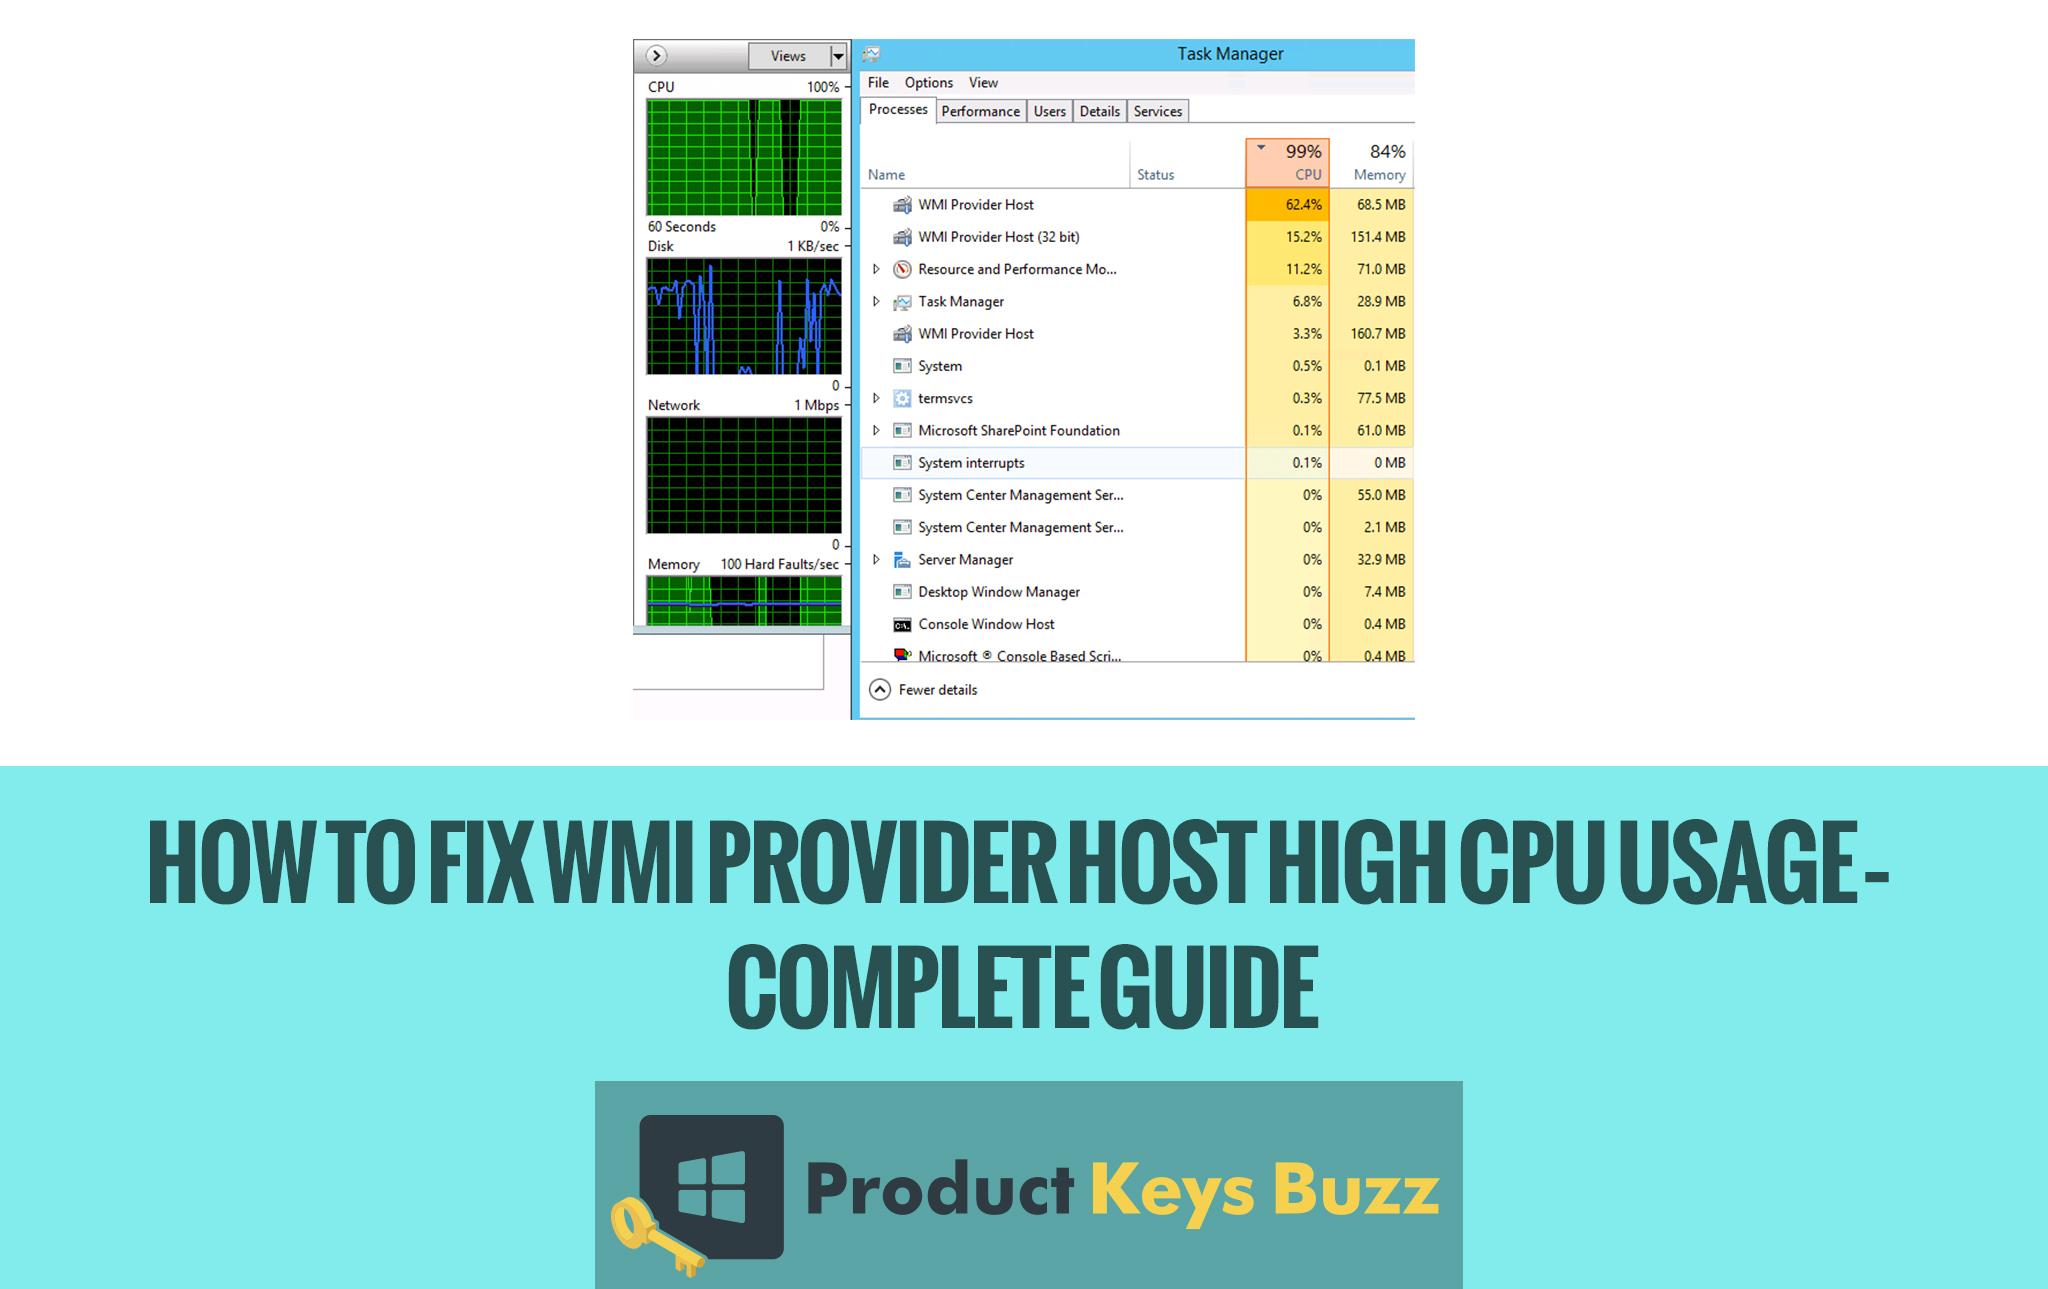 How to Fix WMI Provider Host high CPU usage - Complete Guide